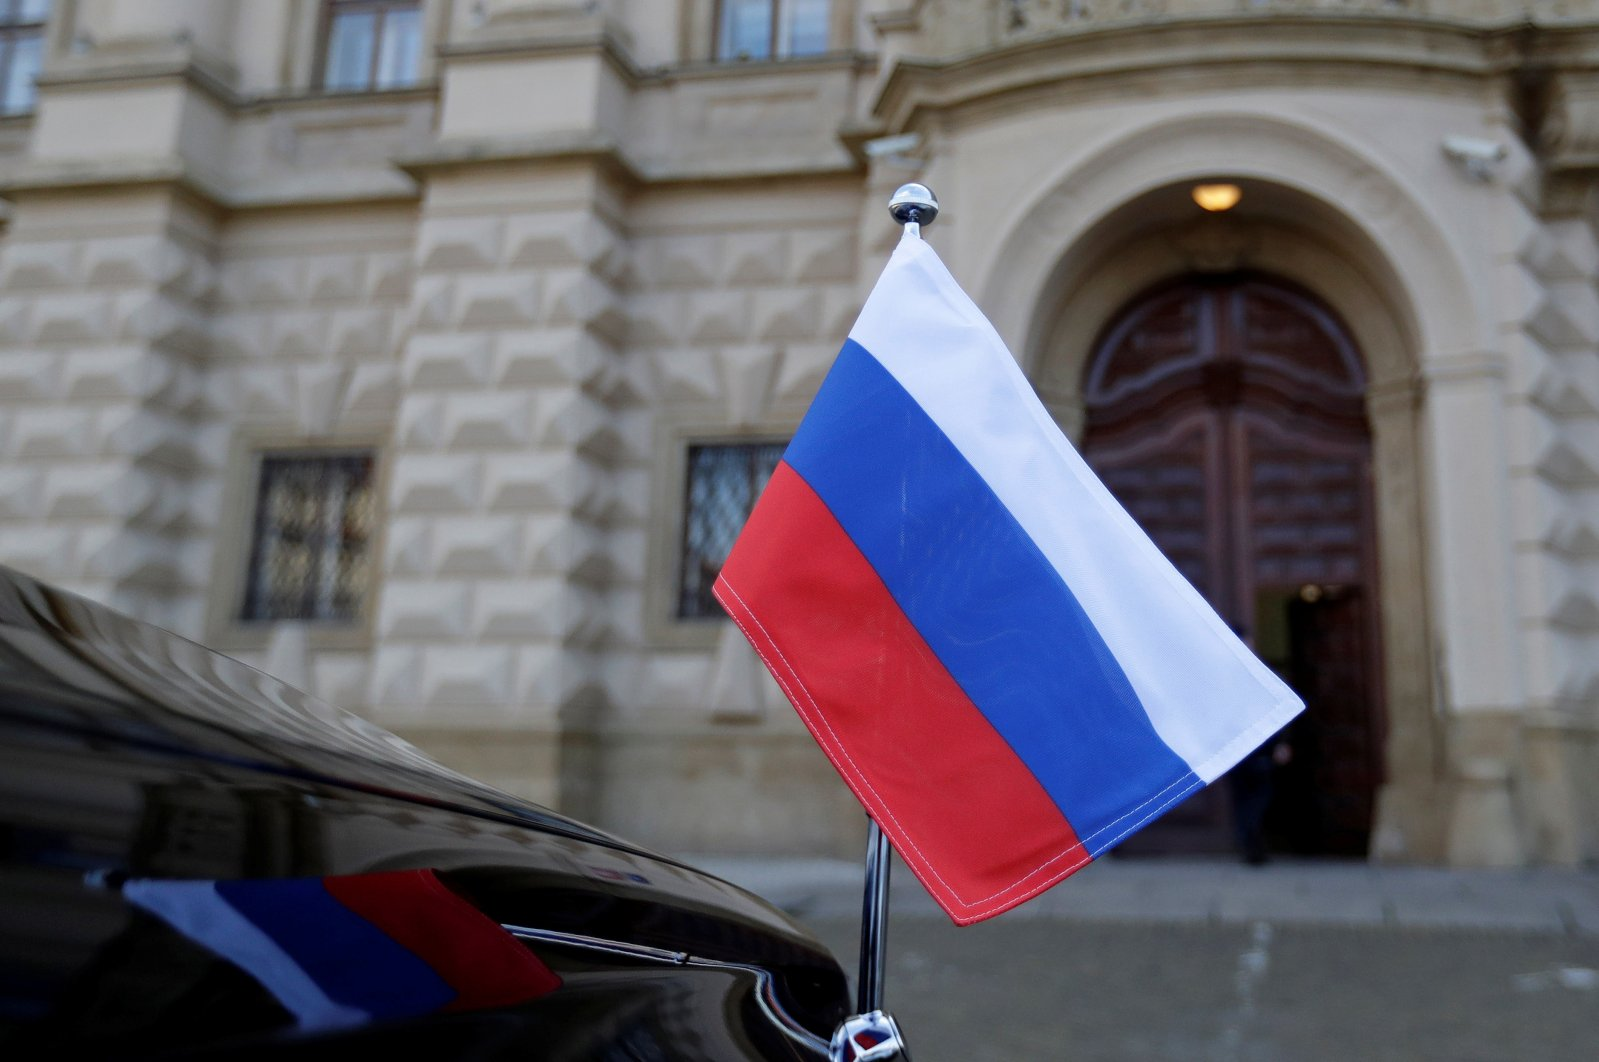 The Russian national flag is seen on a car in front of the Foreign Ministry in Prague, Czech Republic, April 21, 2021. (Reuters Photo)